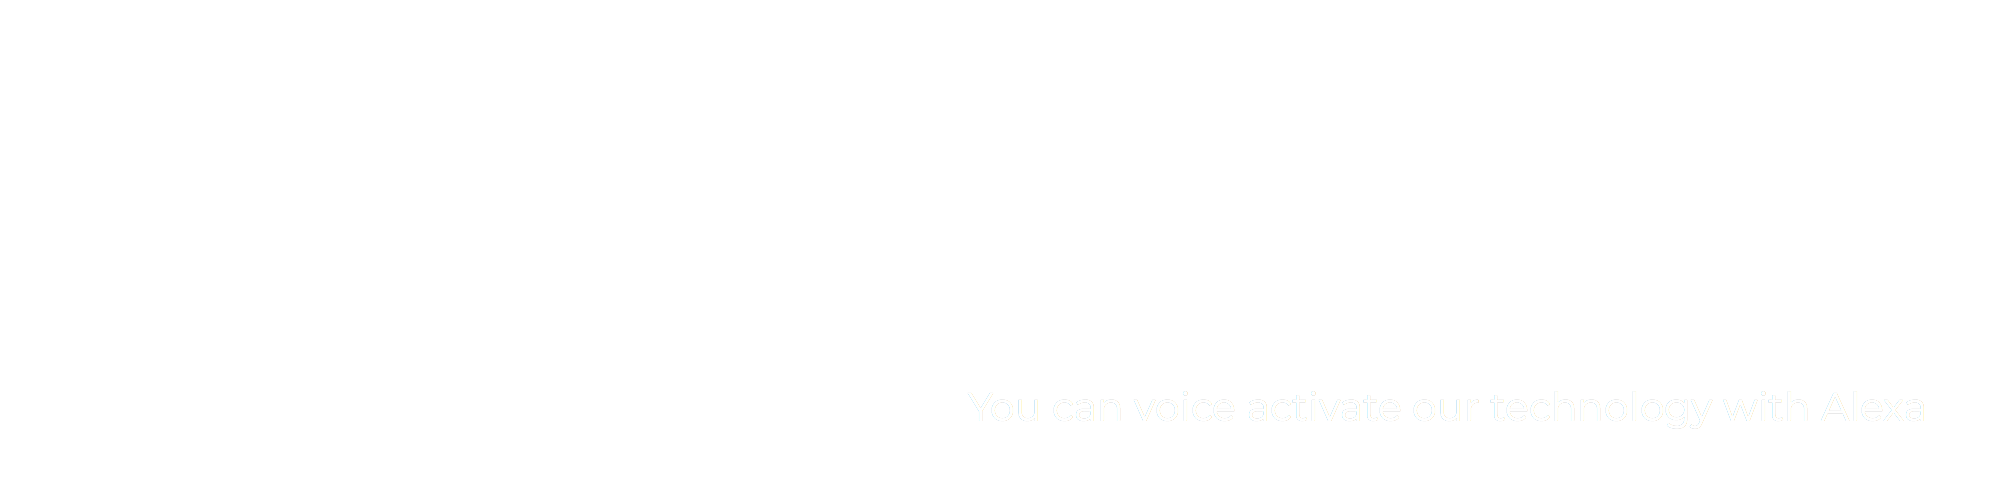 VOICE ACTIVATION SMART GLASS-logo-white.png